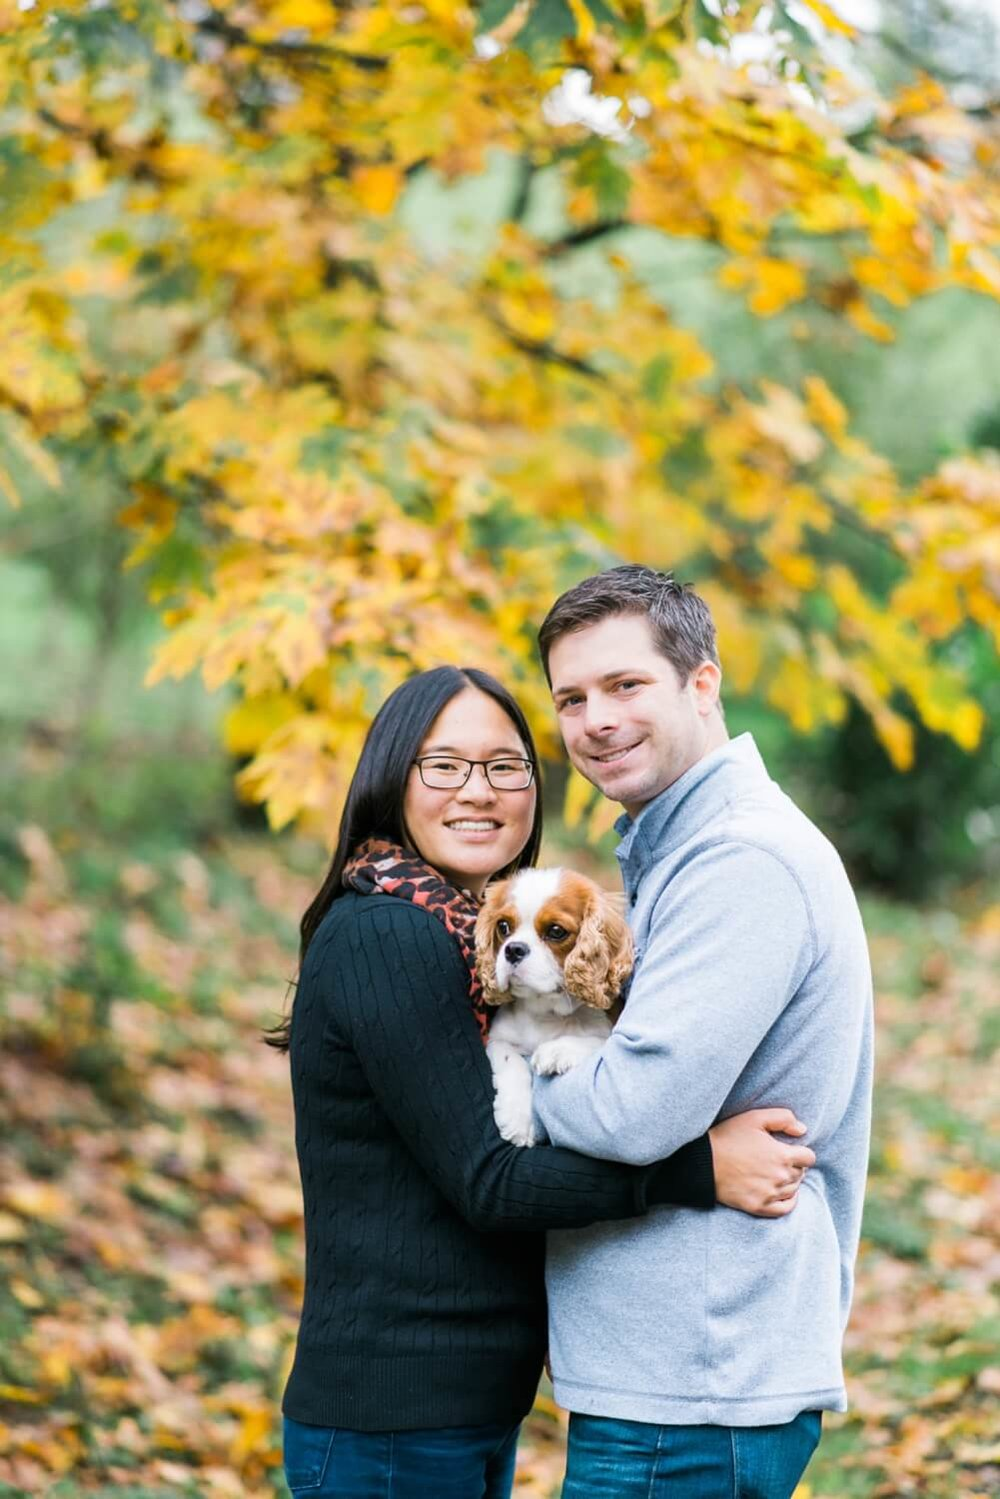 portland-engagement-colubia-river-gorge-latourell-waterfall-autumn-fall-crown-point-shelley-marie-photo-14_cr.jpg